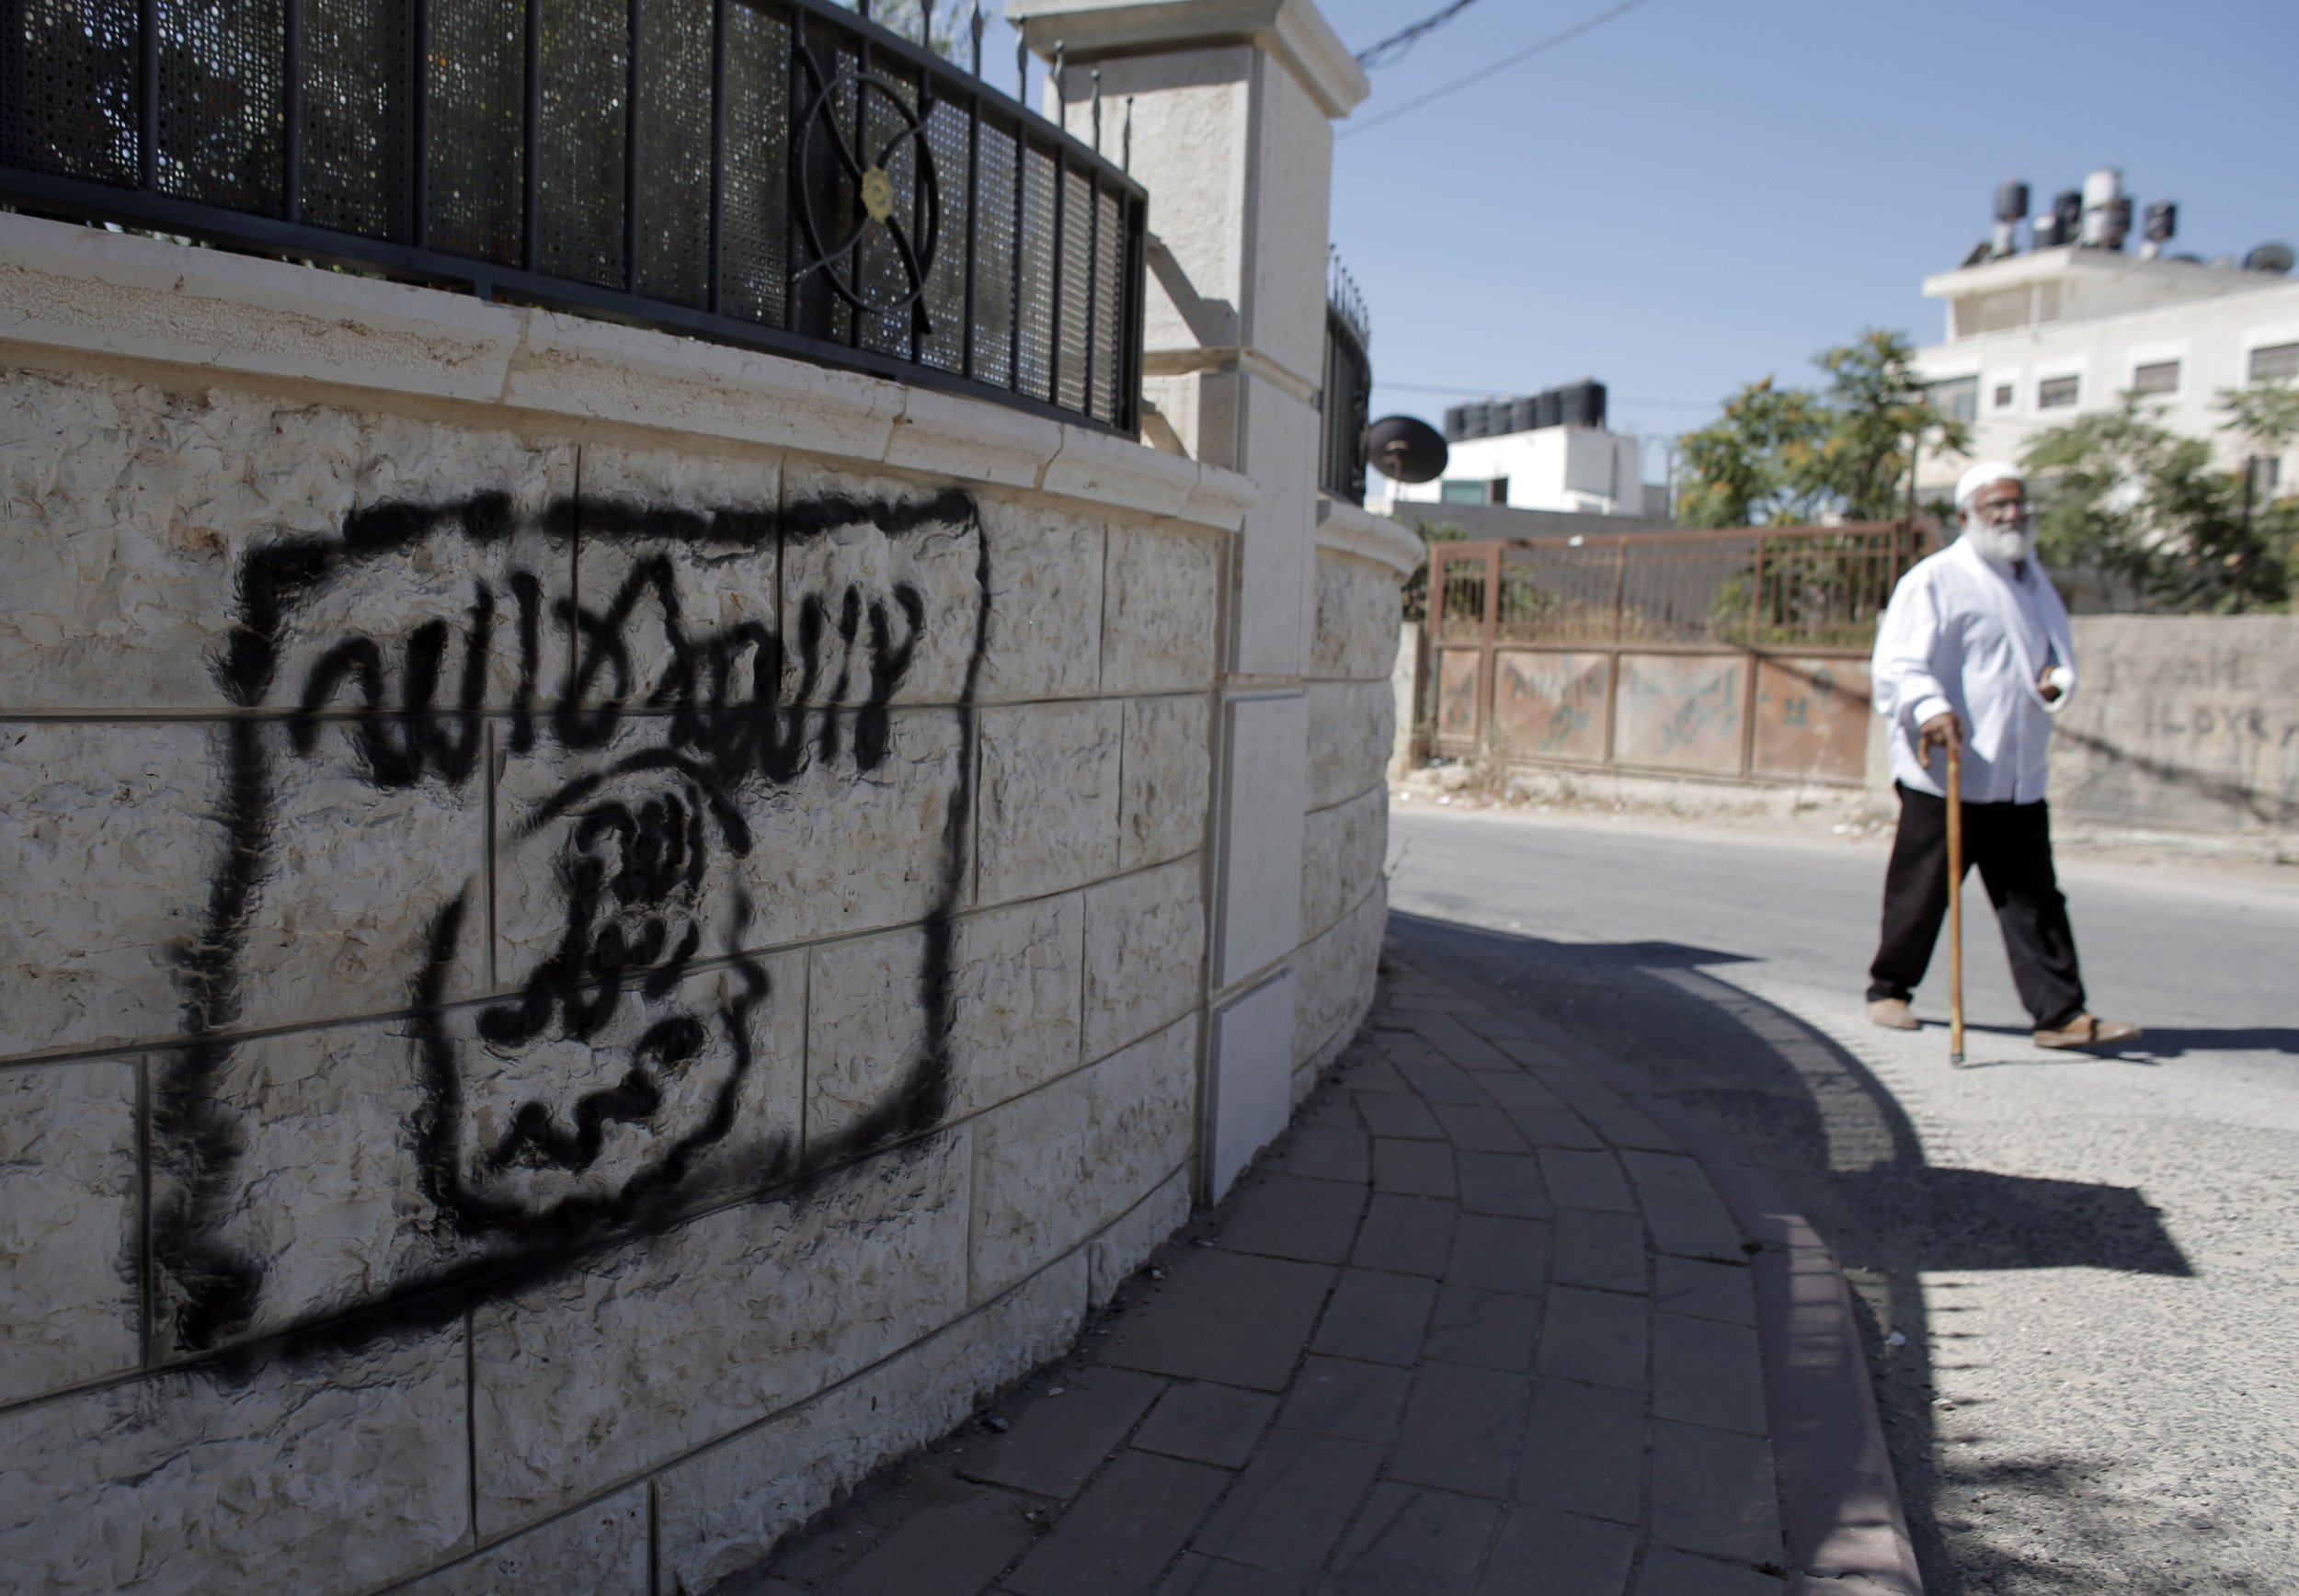 ISIS graffiti in East Jerusalem